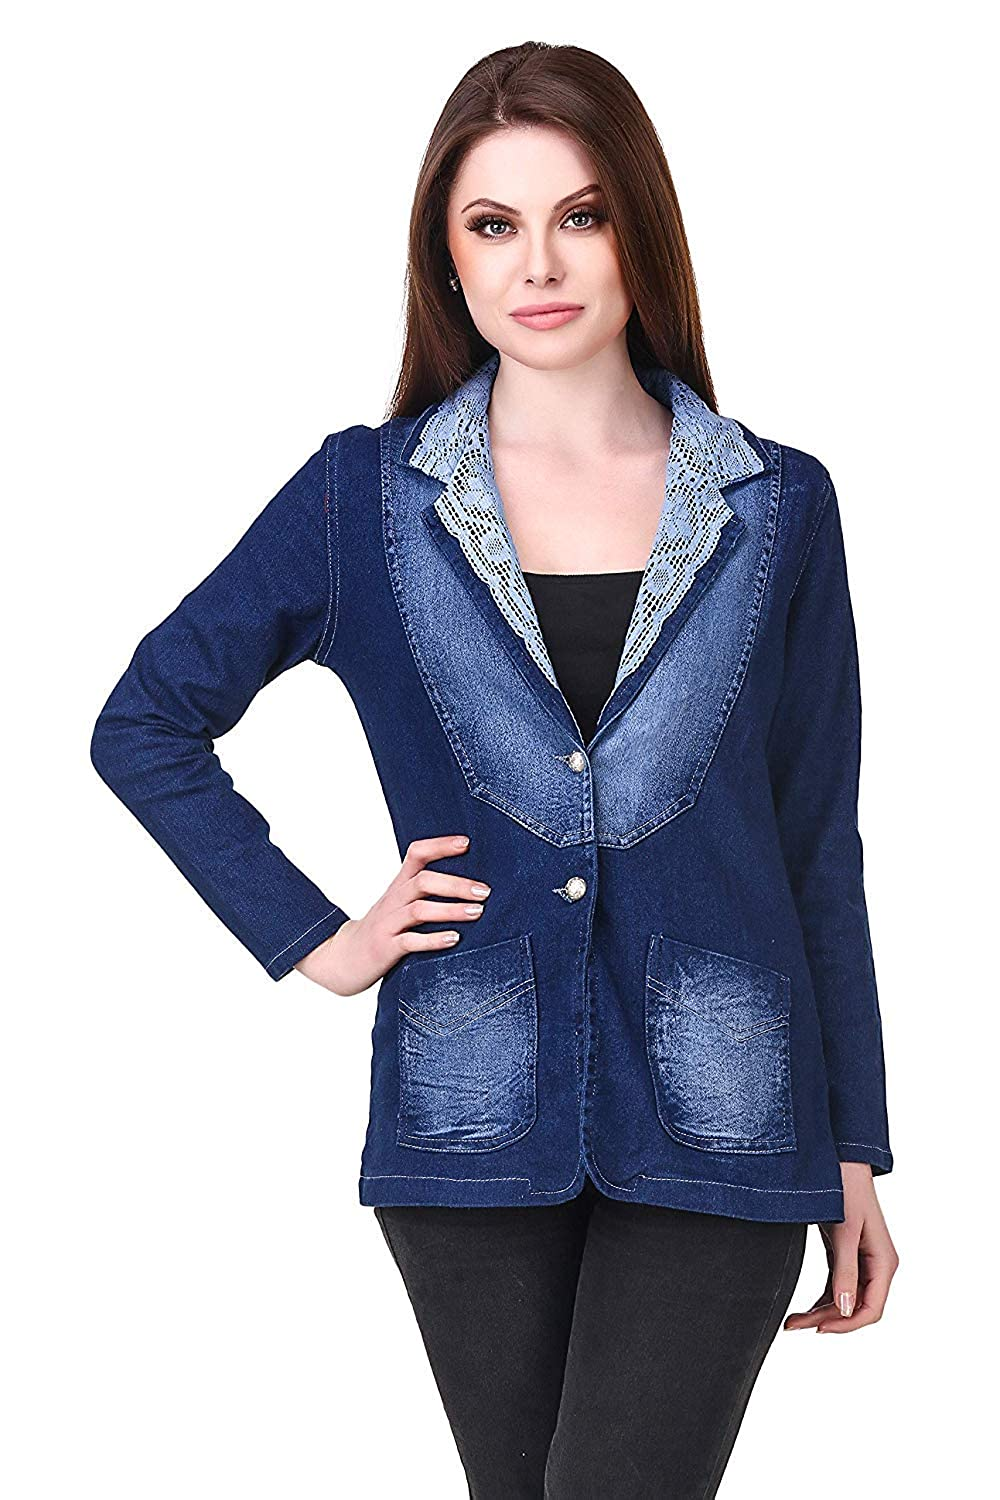 Buy Clo Clu Full Sleeves Stylish Comfort Fit Regular Collar Dark Blue Denim Coat For Women At Amazon In Shop for women's, men's and kids' fashion, beauty and home essentials online! amazon in